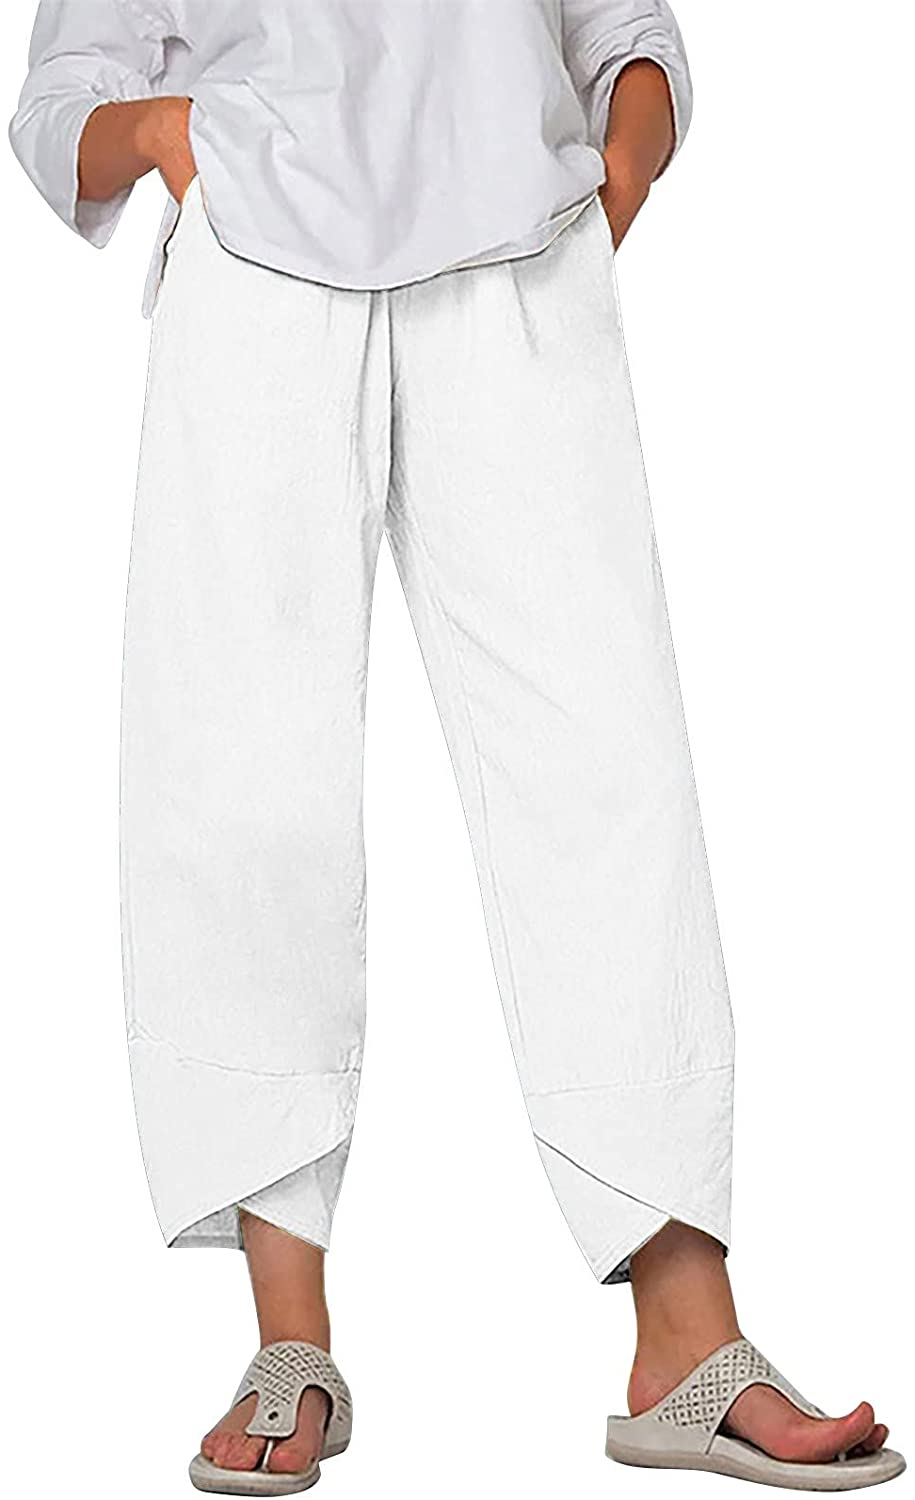 MASZONE Capris Pants for Women Casual Summer Solid Color Cropped Harem Pants Elastic Waist Wide Leg Trousers with Pocket